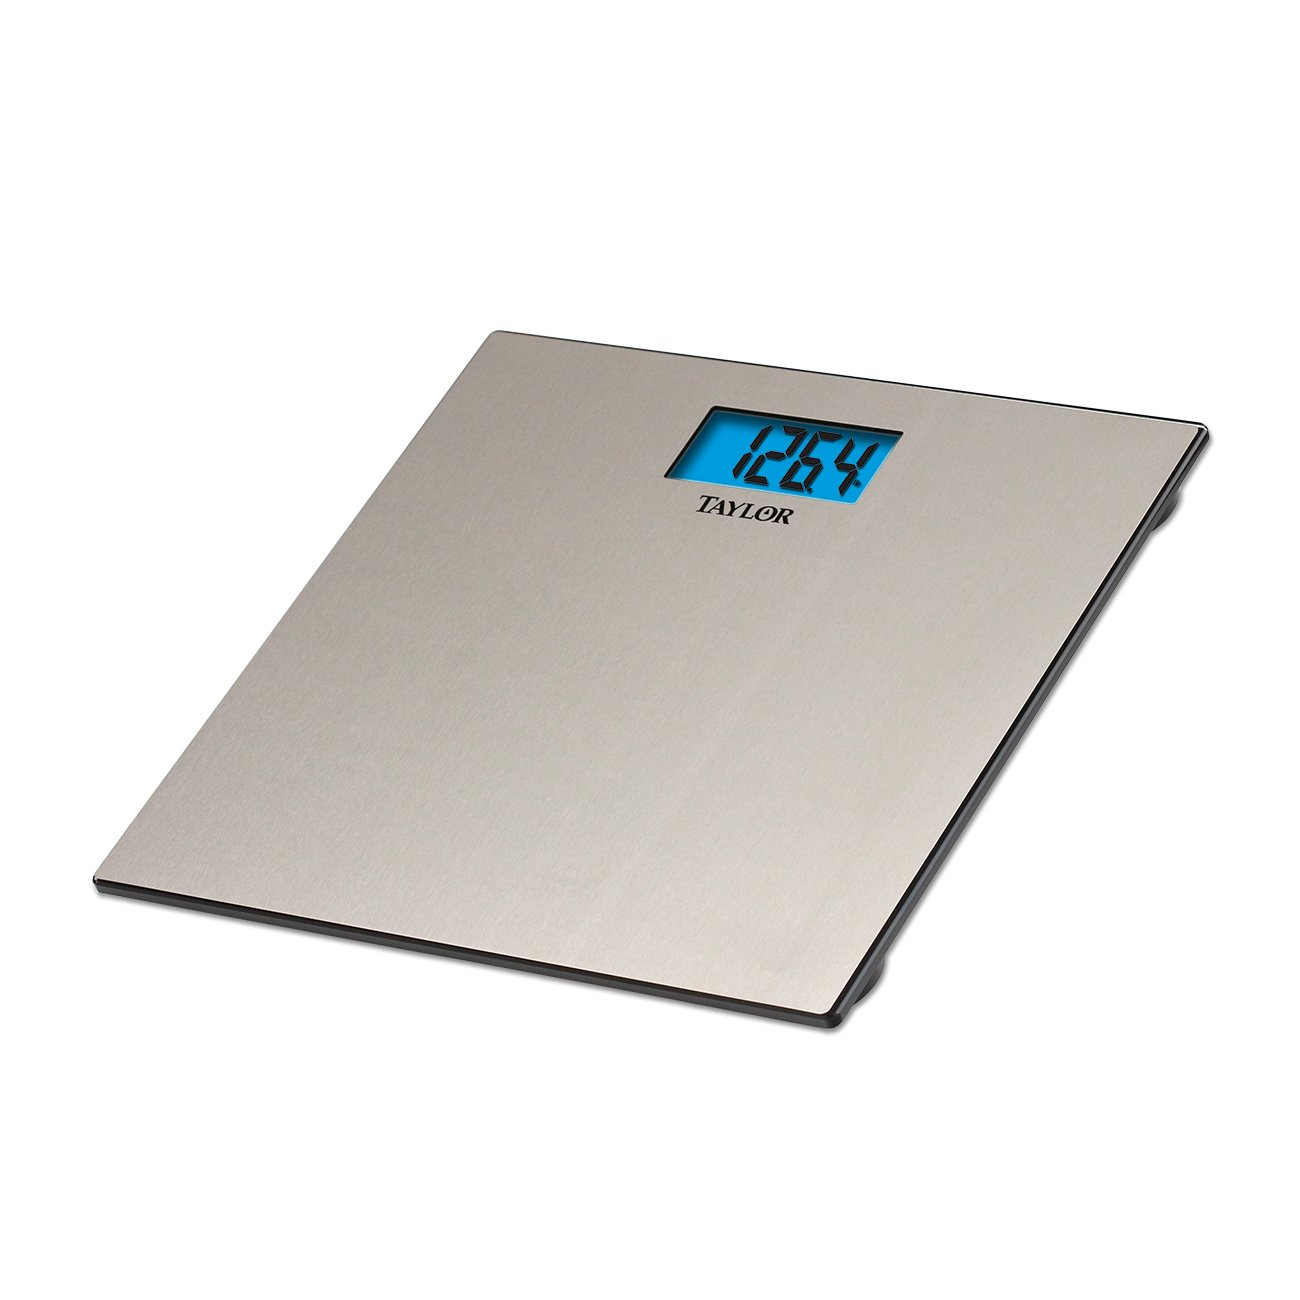 Taylor 7407 Digital Stainless Steel Scale